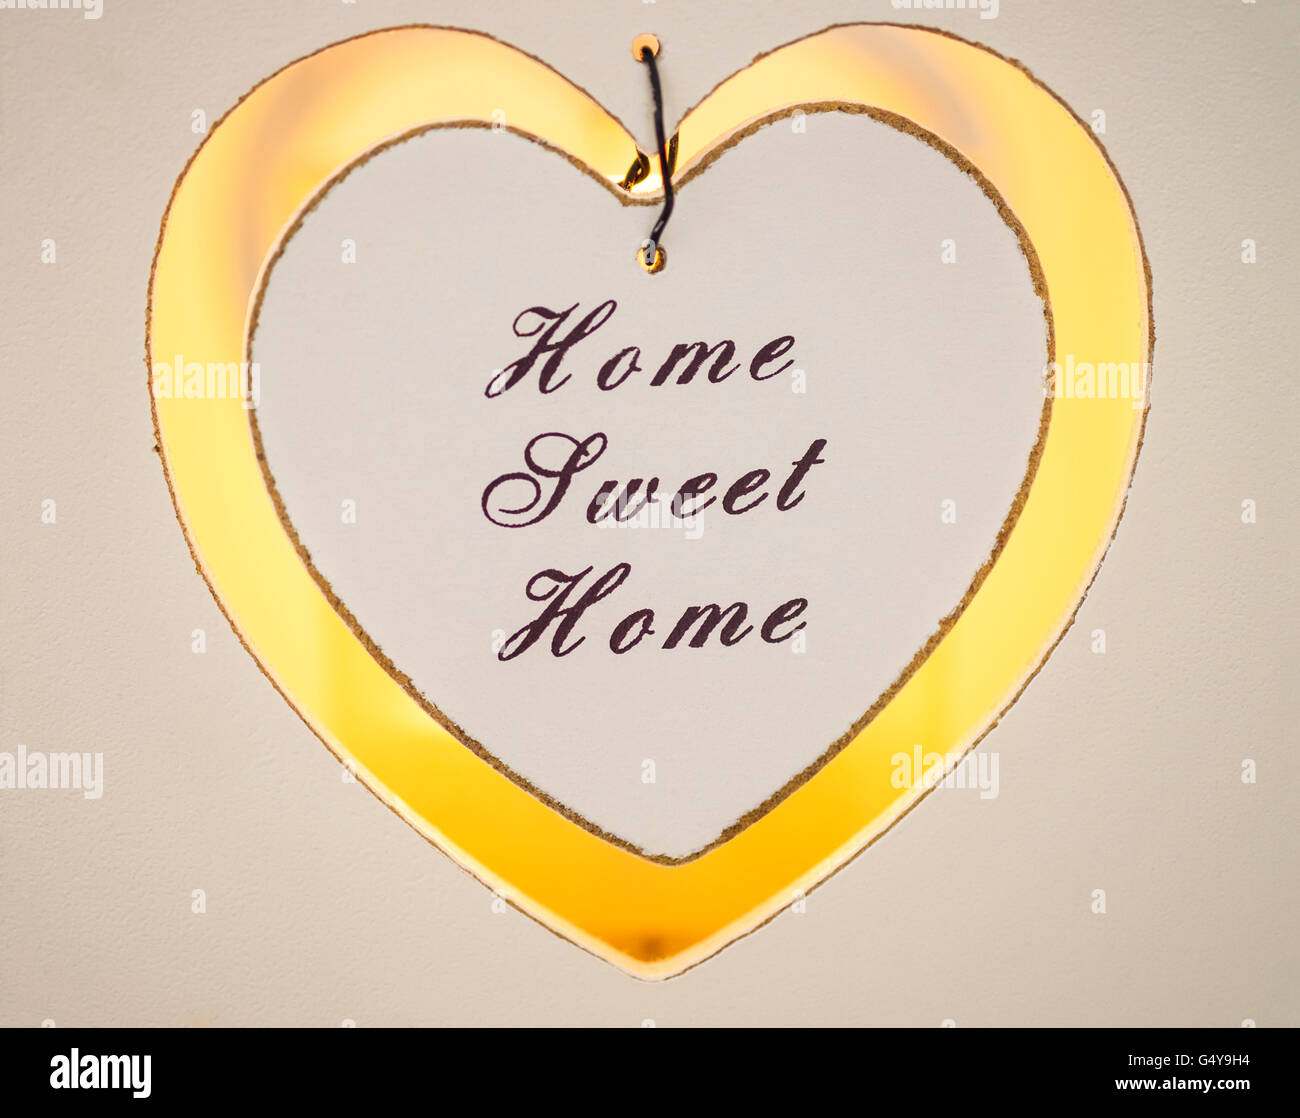 Home Sweet Home candle votive with candlelight - Stock Image